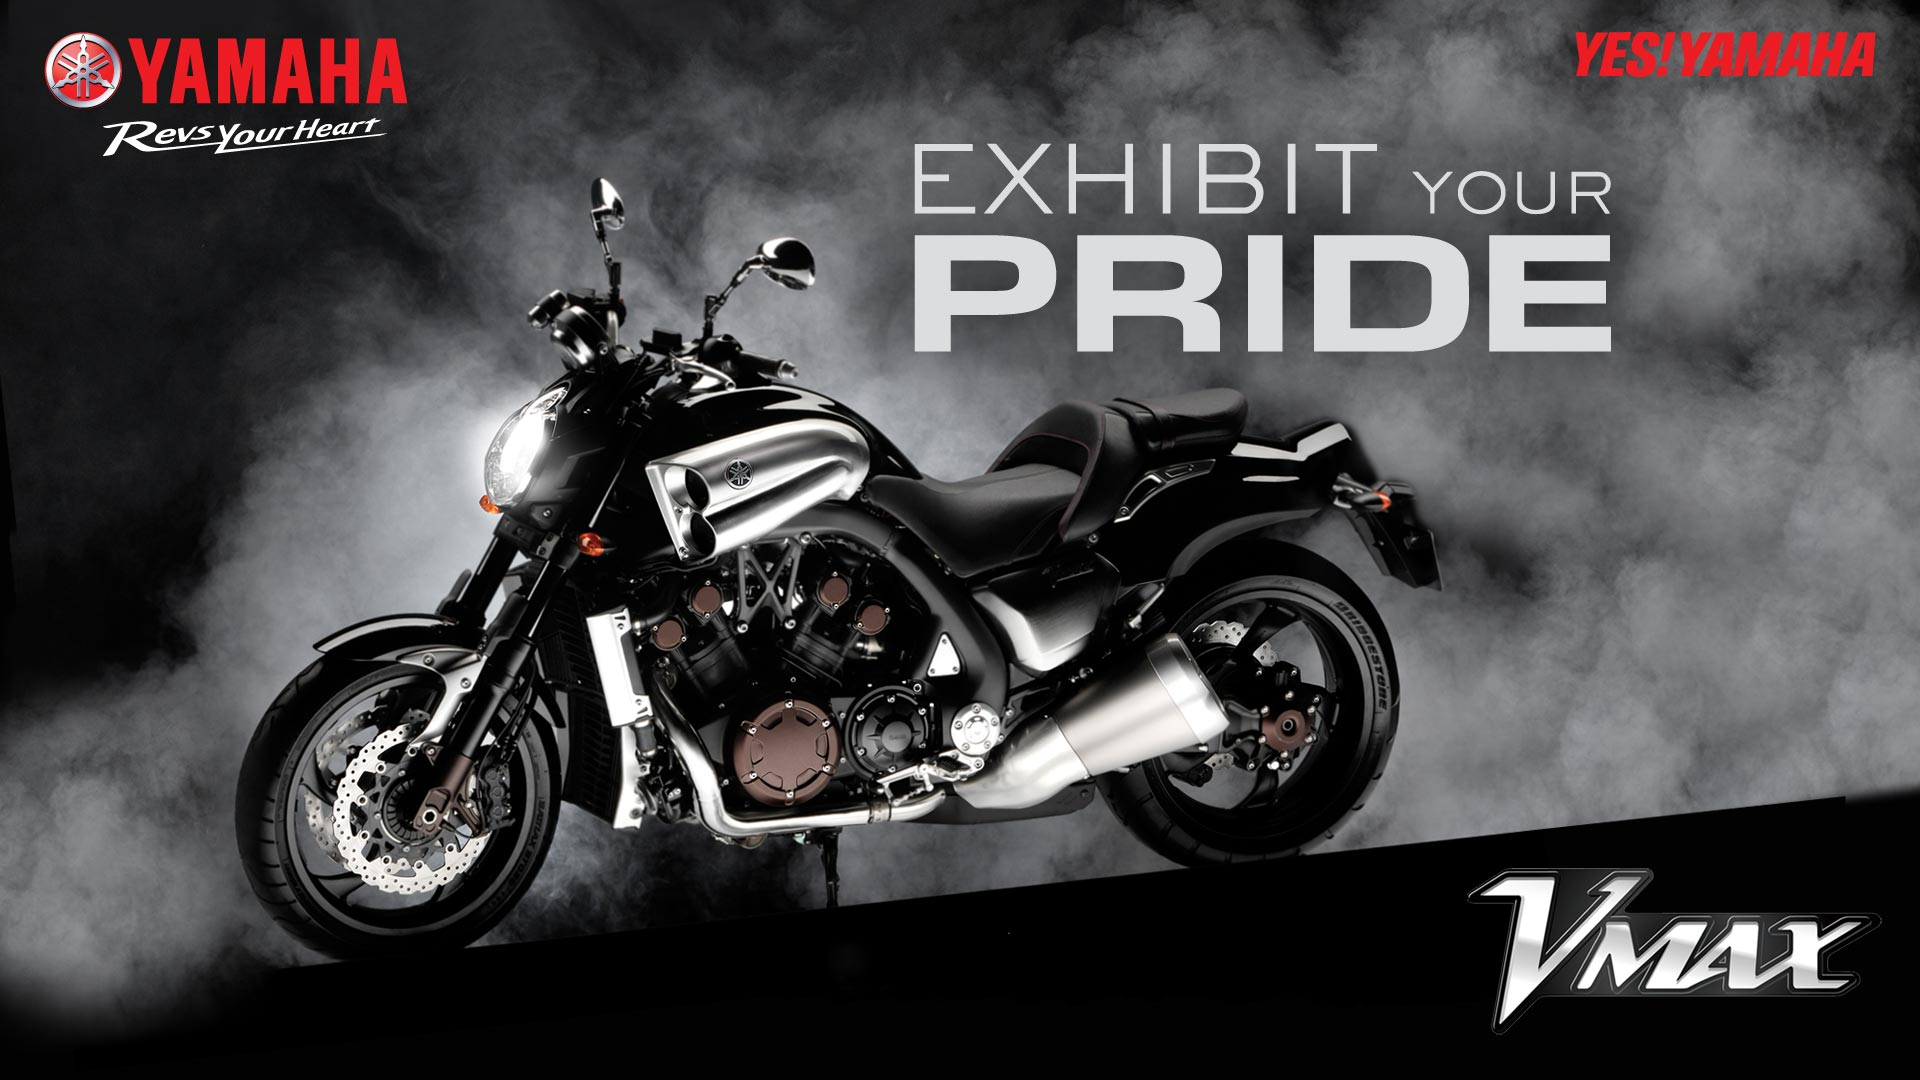 Yamaha Vmax Bike Review, Specification, Mileage and Price